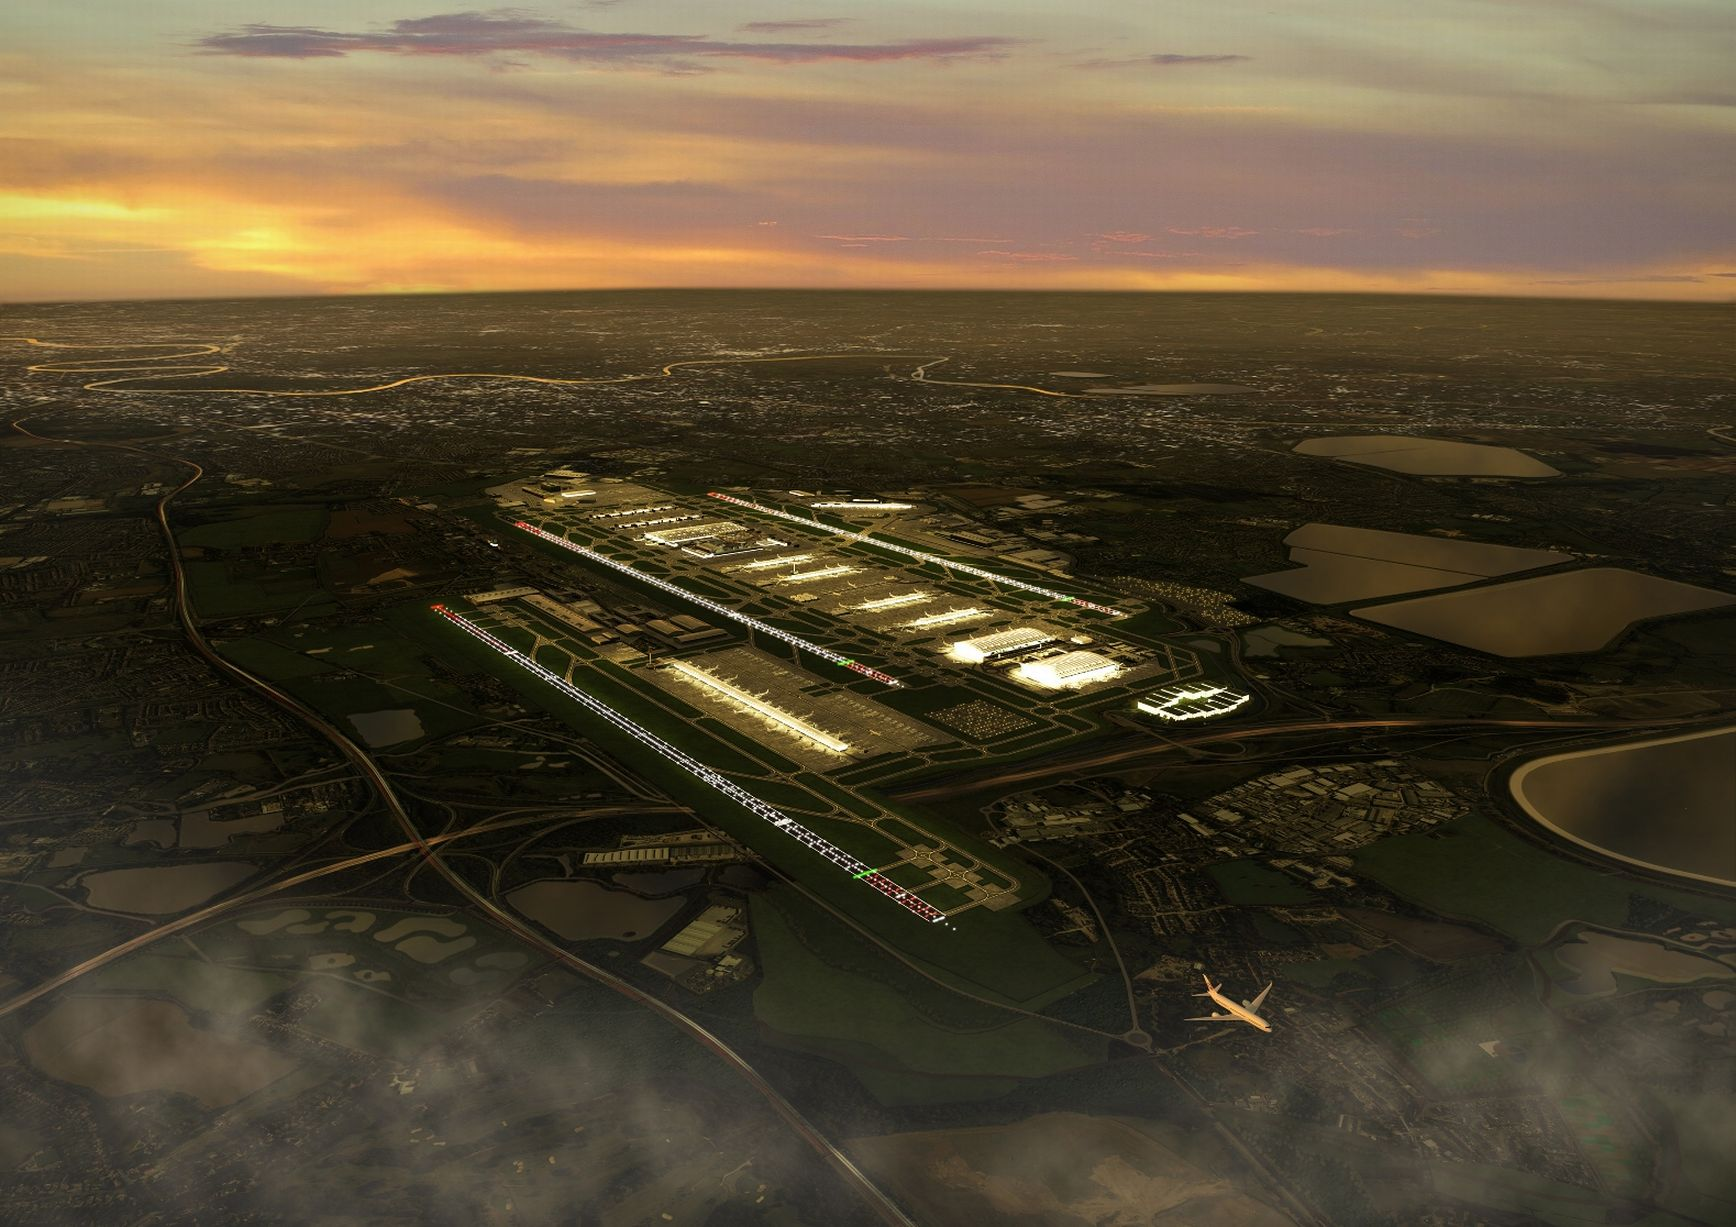 heathrow-runway-7.jpg